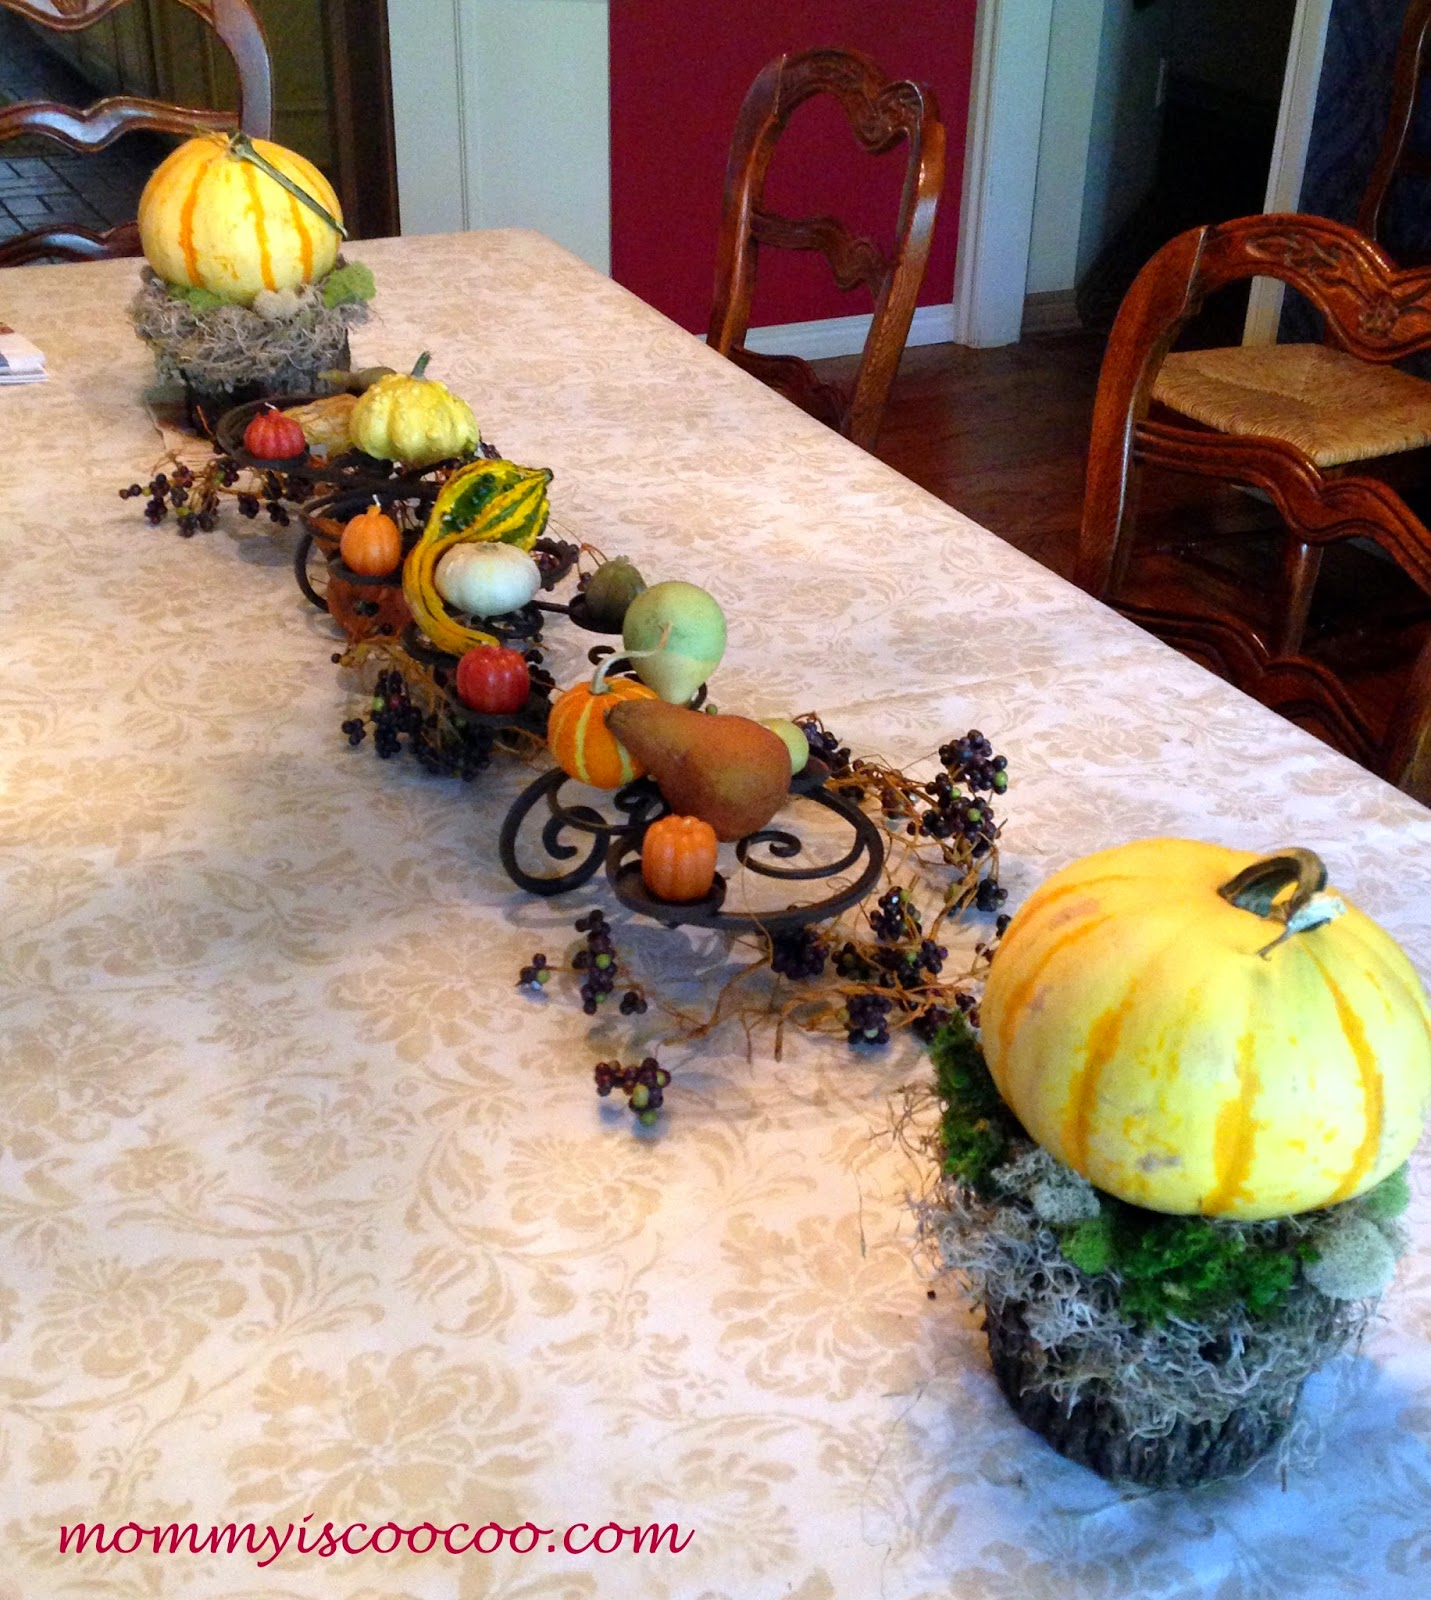 how to decorate for fall, fall decor, fall decorations from mommy is coocoo